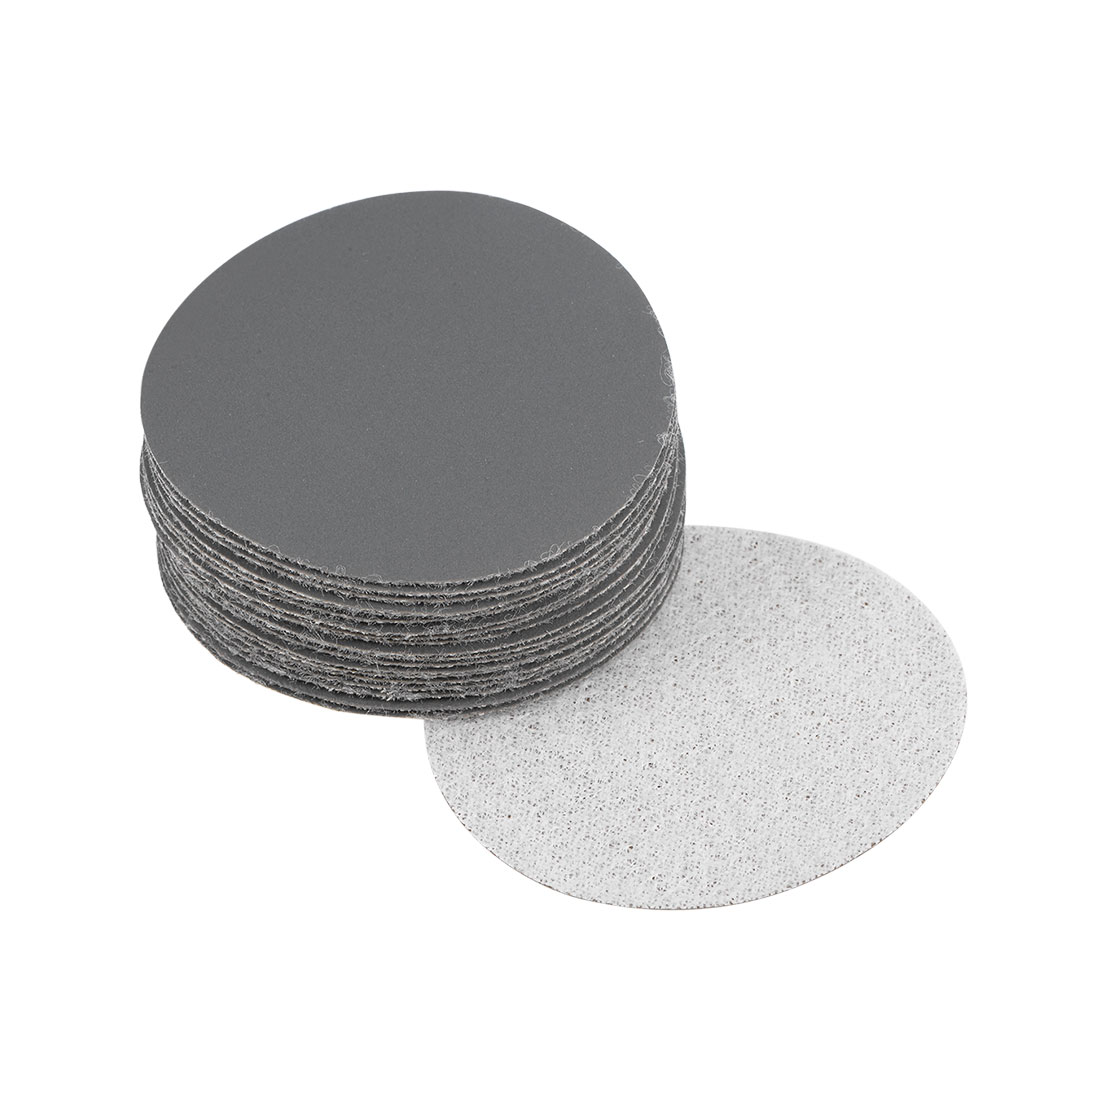 2 inch Wet Dry Discs 1500 Grit Hook and Loop Sanding Disc Silicon Carbide 20pcs